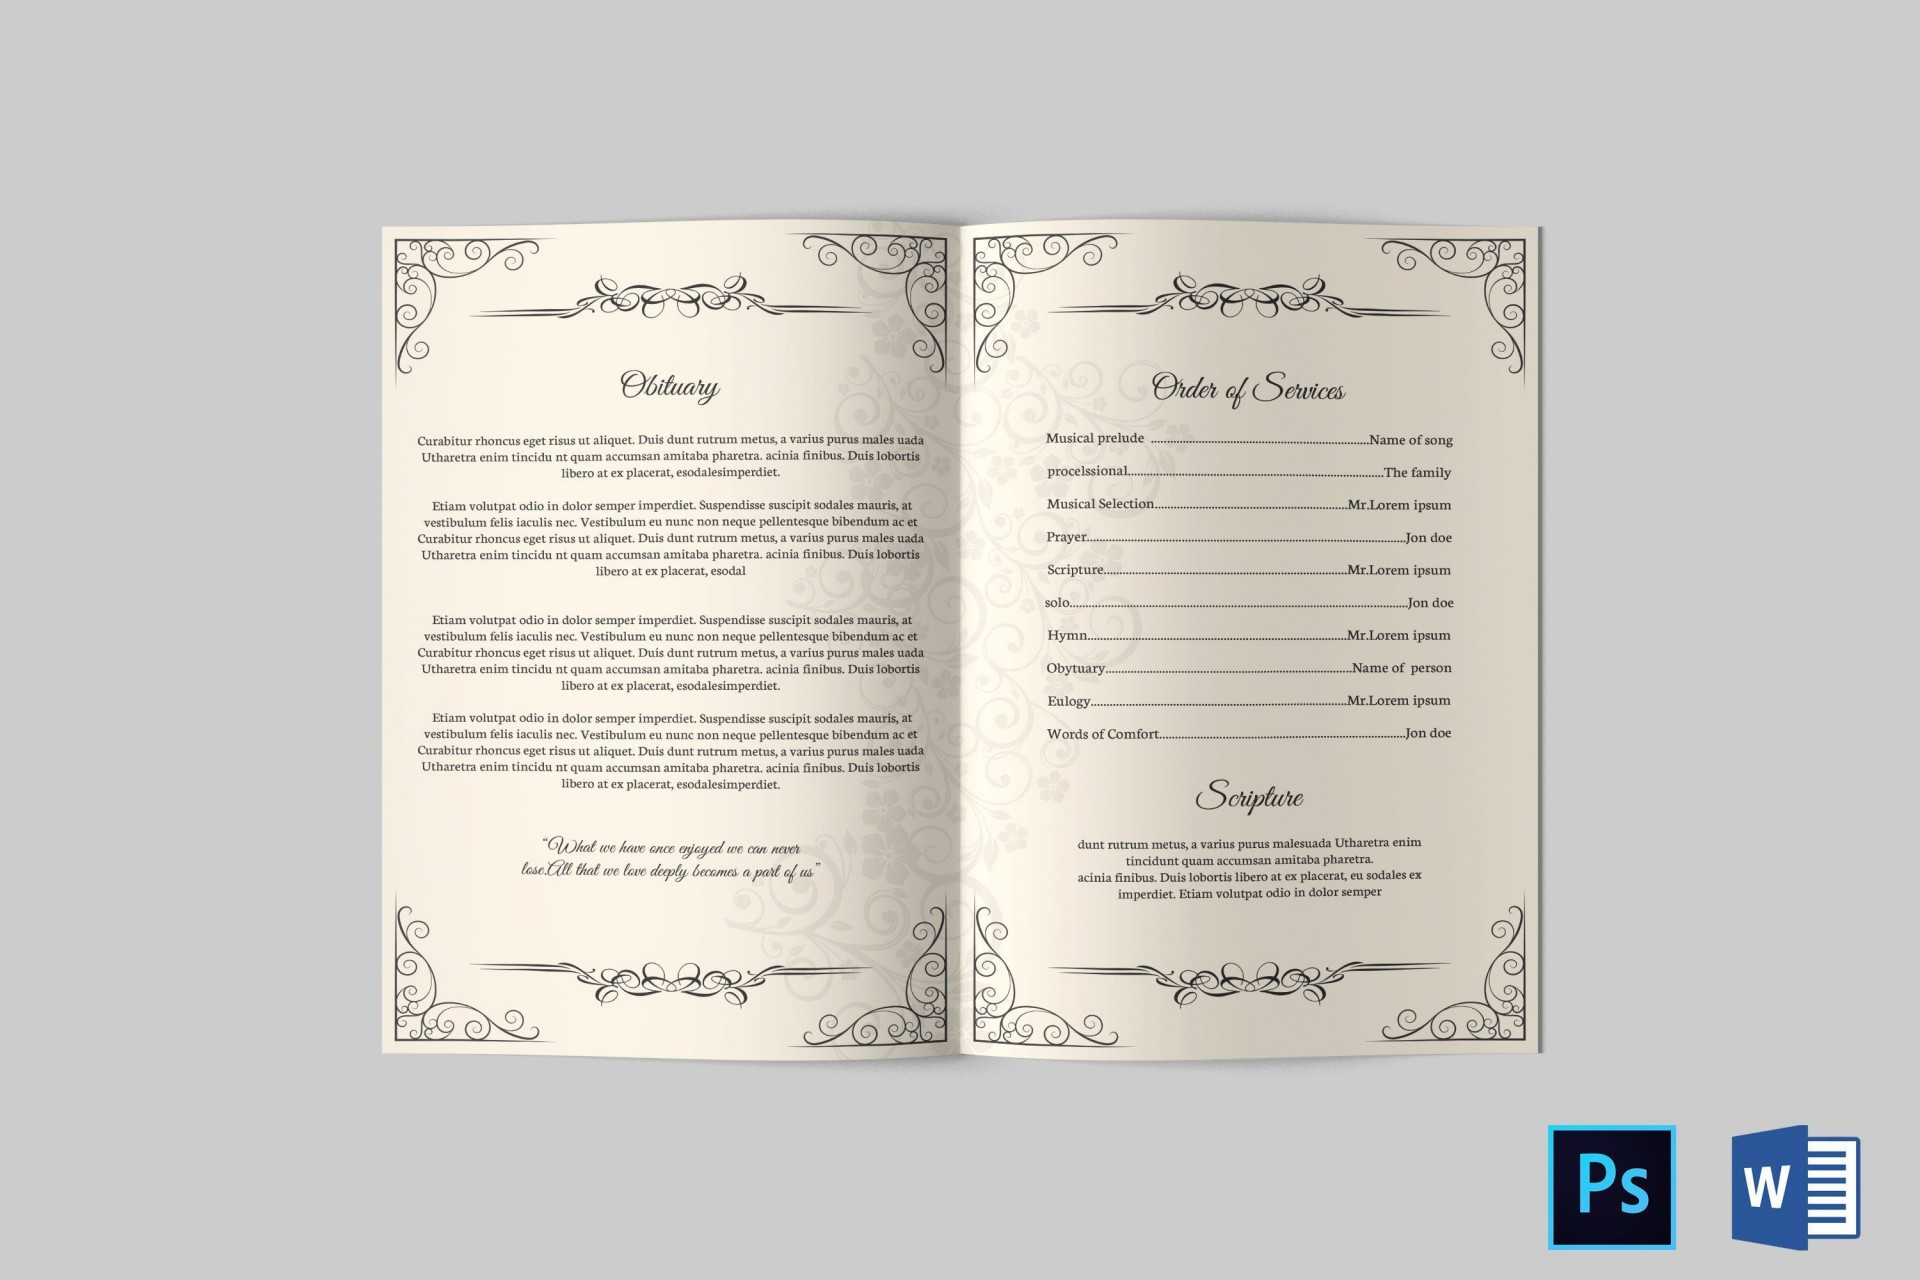 004 Fearsome Catholic Funeral Program Template Design  Mas Layout Free1920